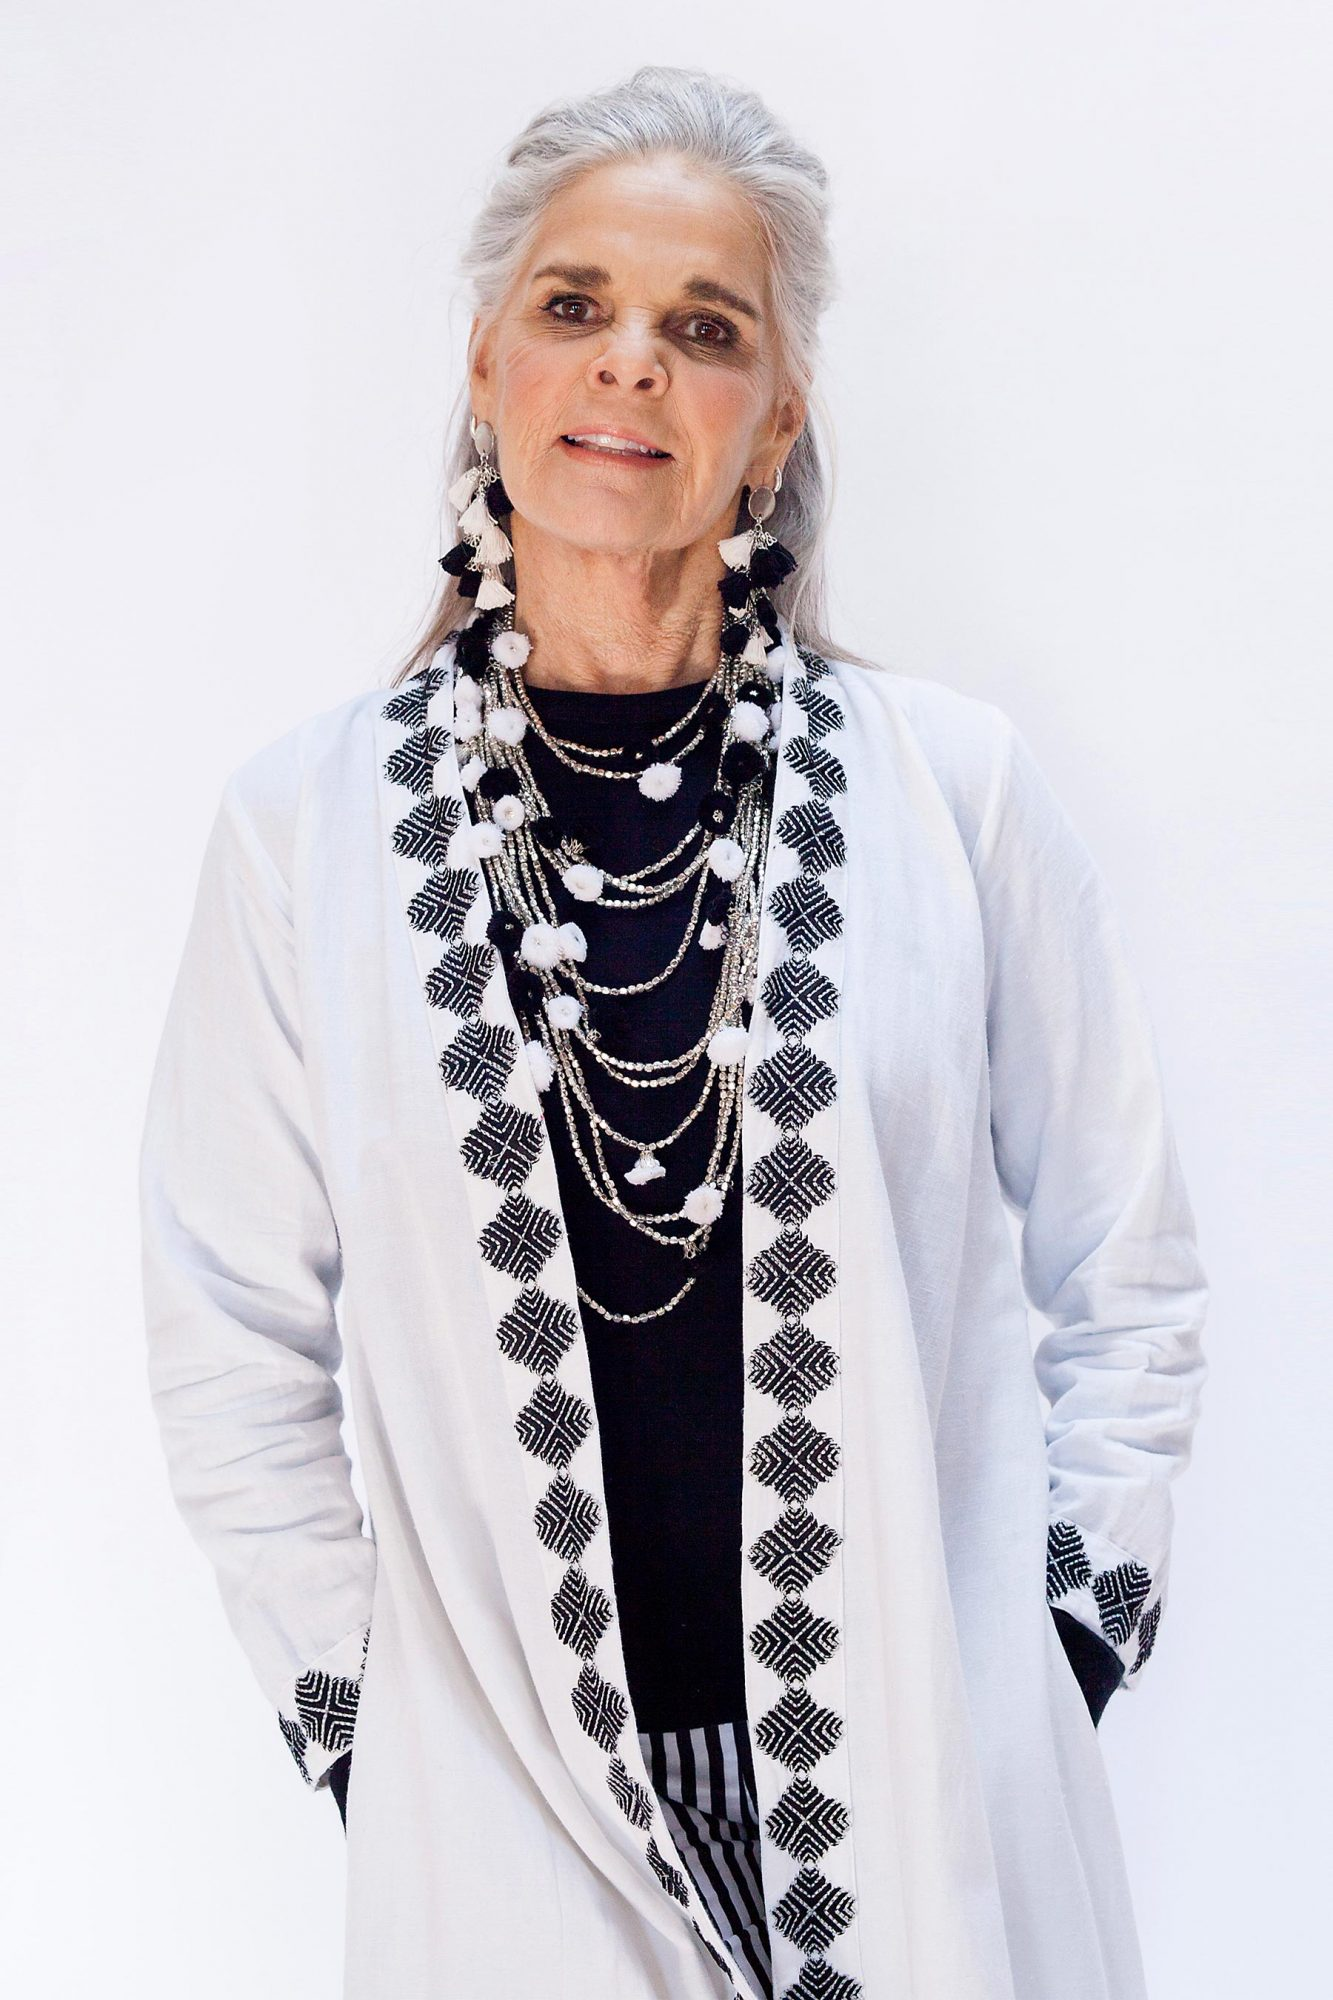 Ali MacGraw modeling for the latest Ibu collection, May 2017.